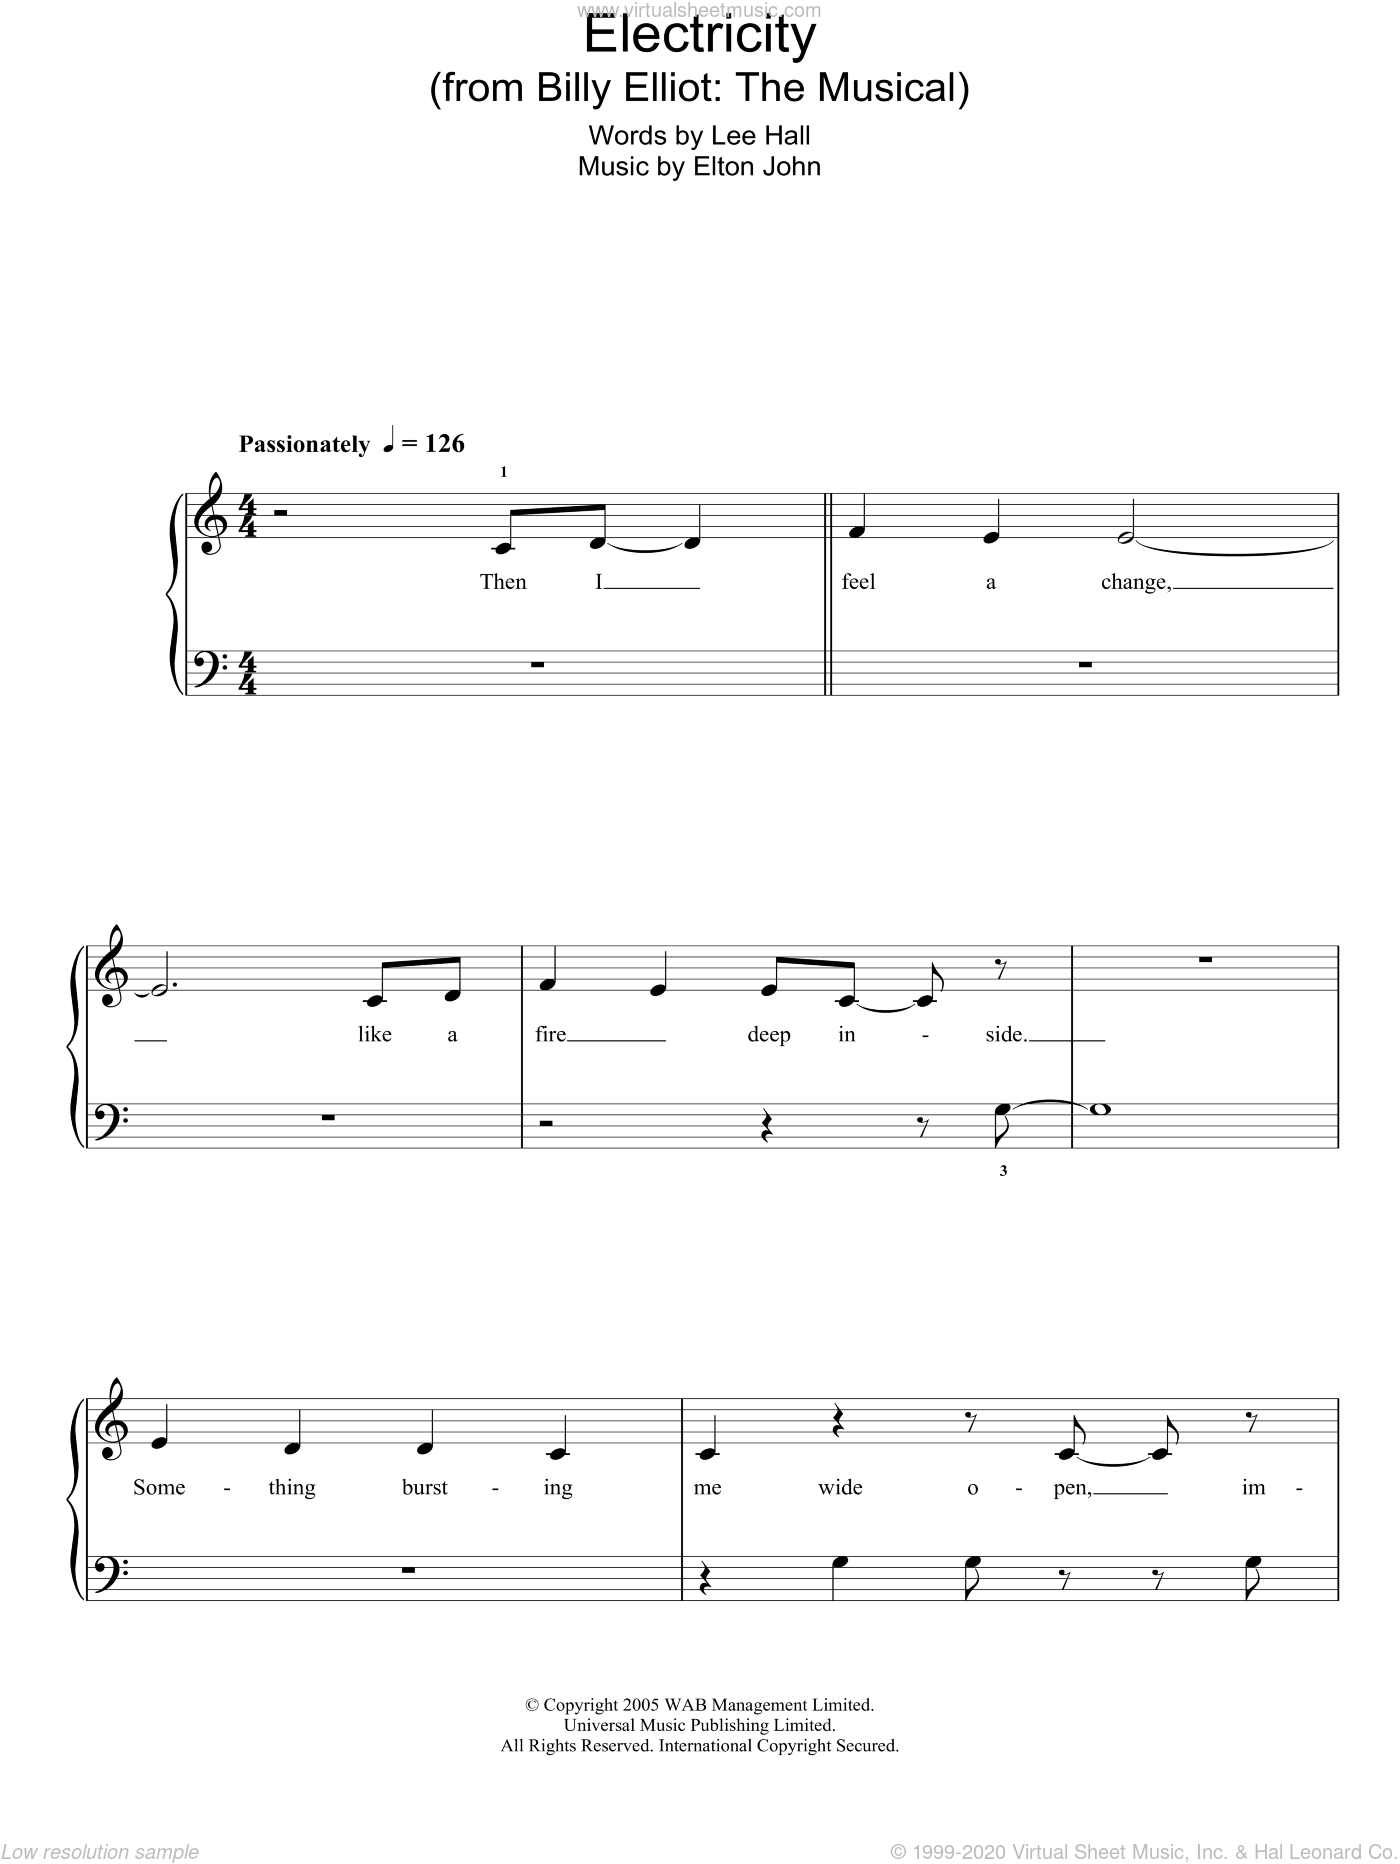 Electricity (from Billy Elliot: The Musical) sheet music for piano solo (chords) by Lee Hall